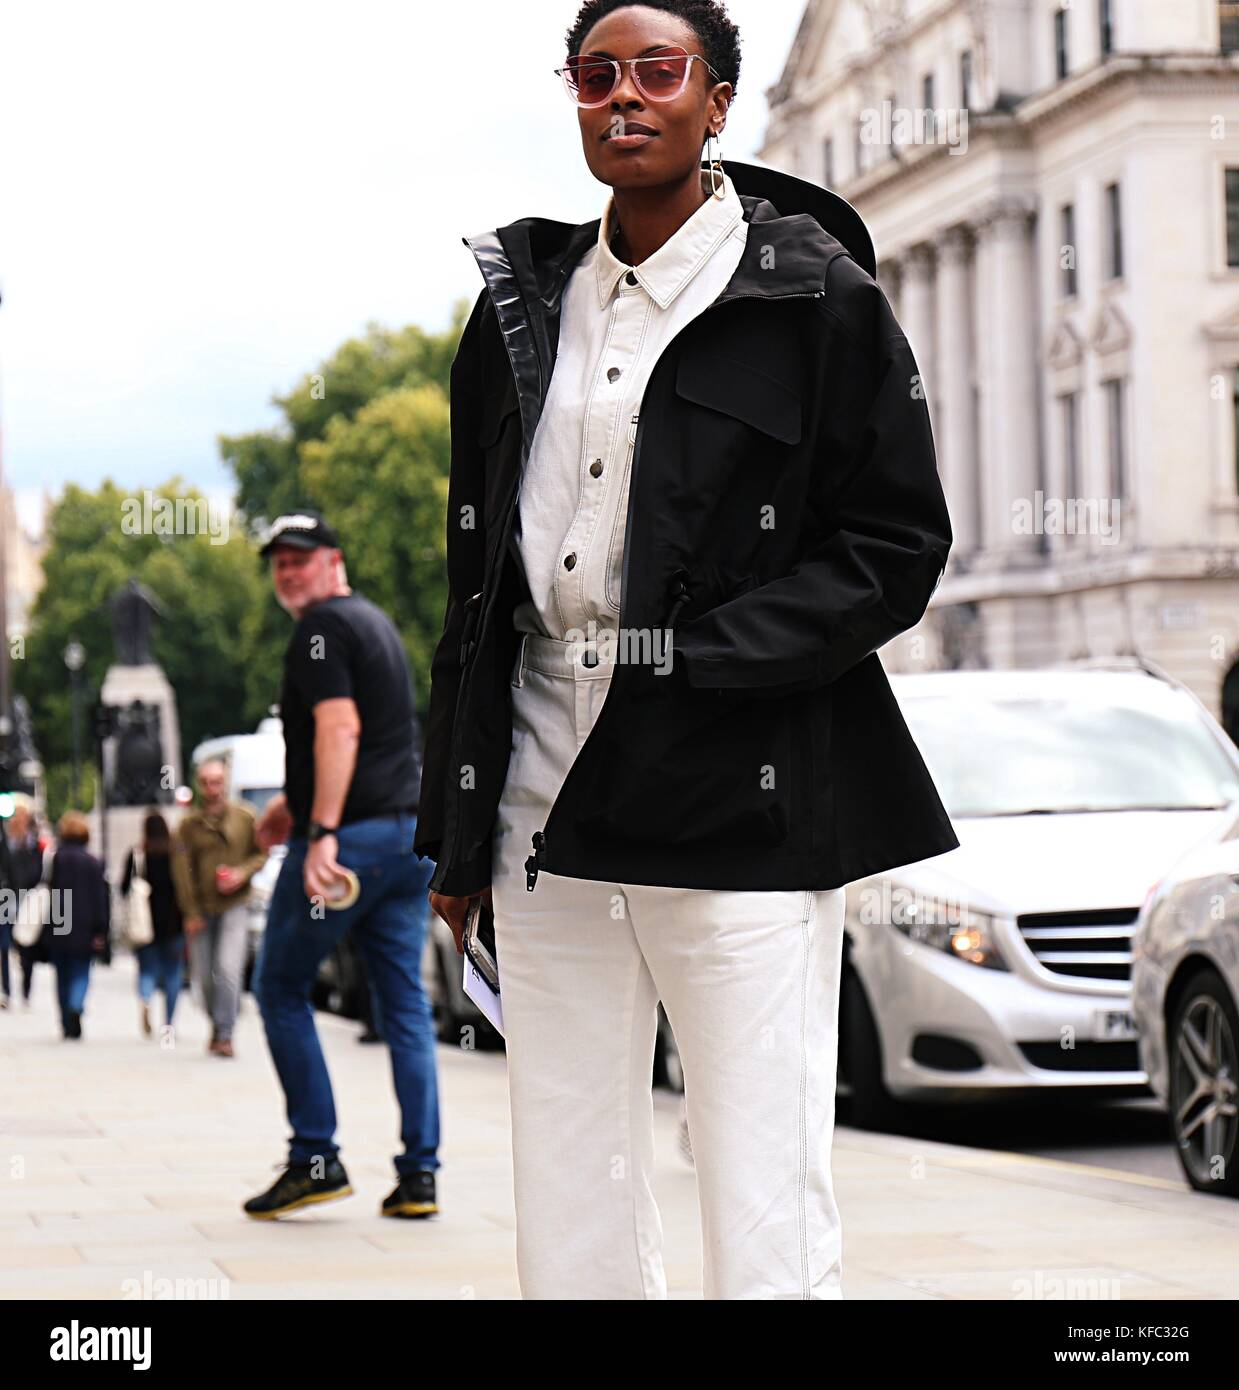 Streetstyle London Stock Photos & Streetstyle London Stock ...